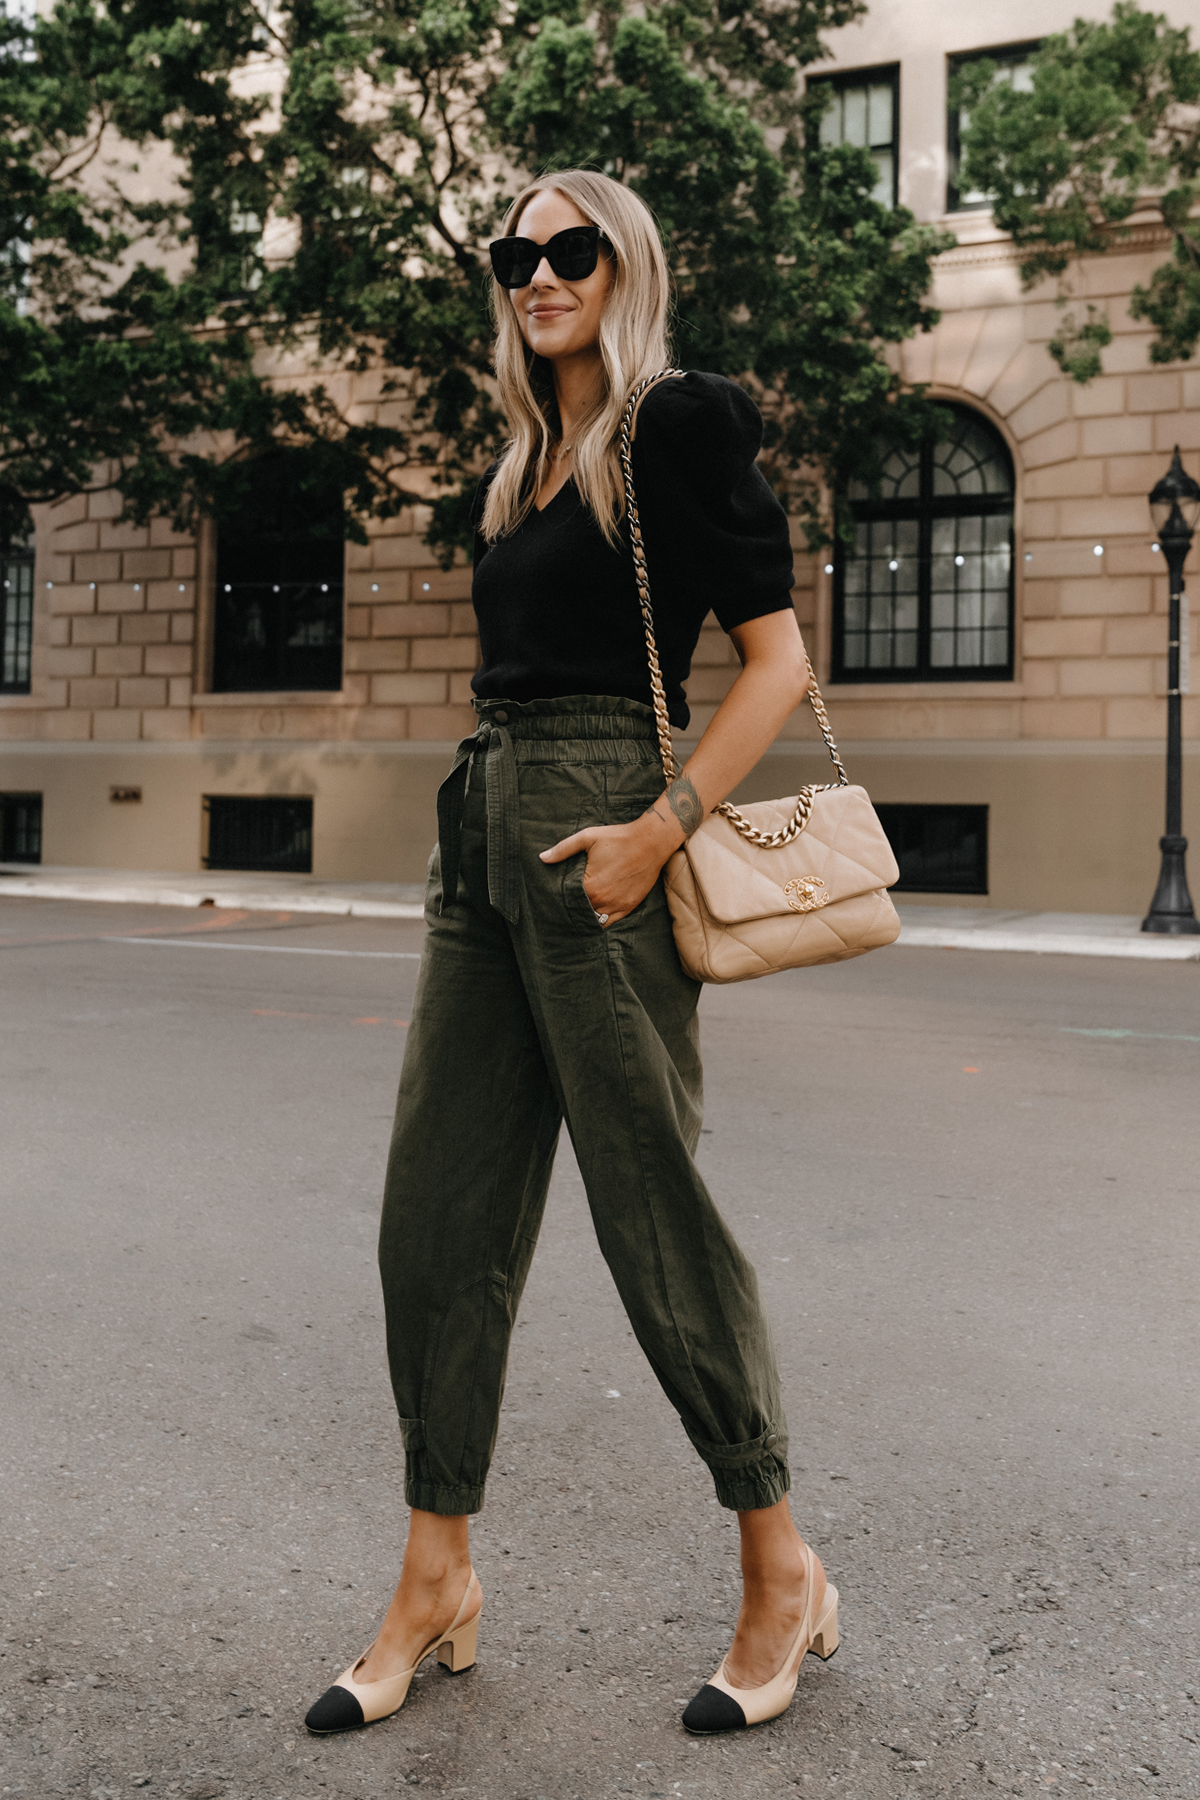 Fashion Jackson Wearing Black Puff Sleeve Sweater Olive Green Trousers Chanel 19 Beige Handbag Chanel Slingbacks Street Style non jeans work outfit for women